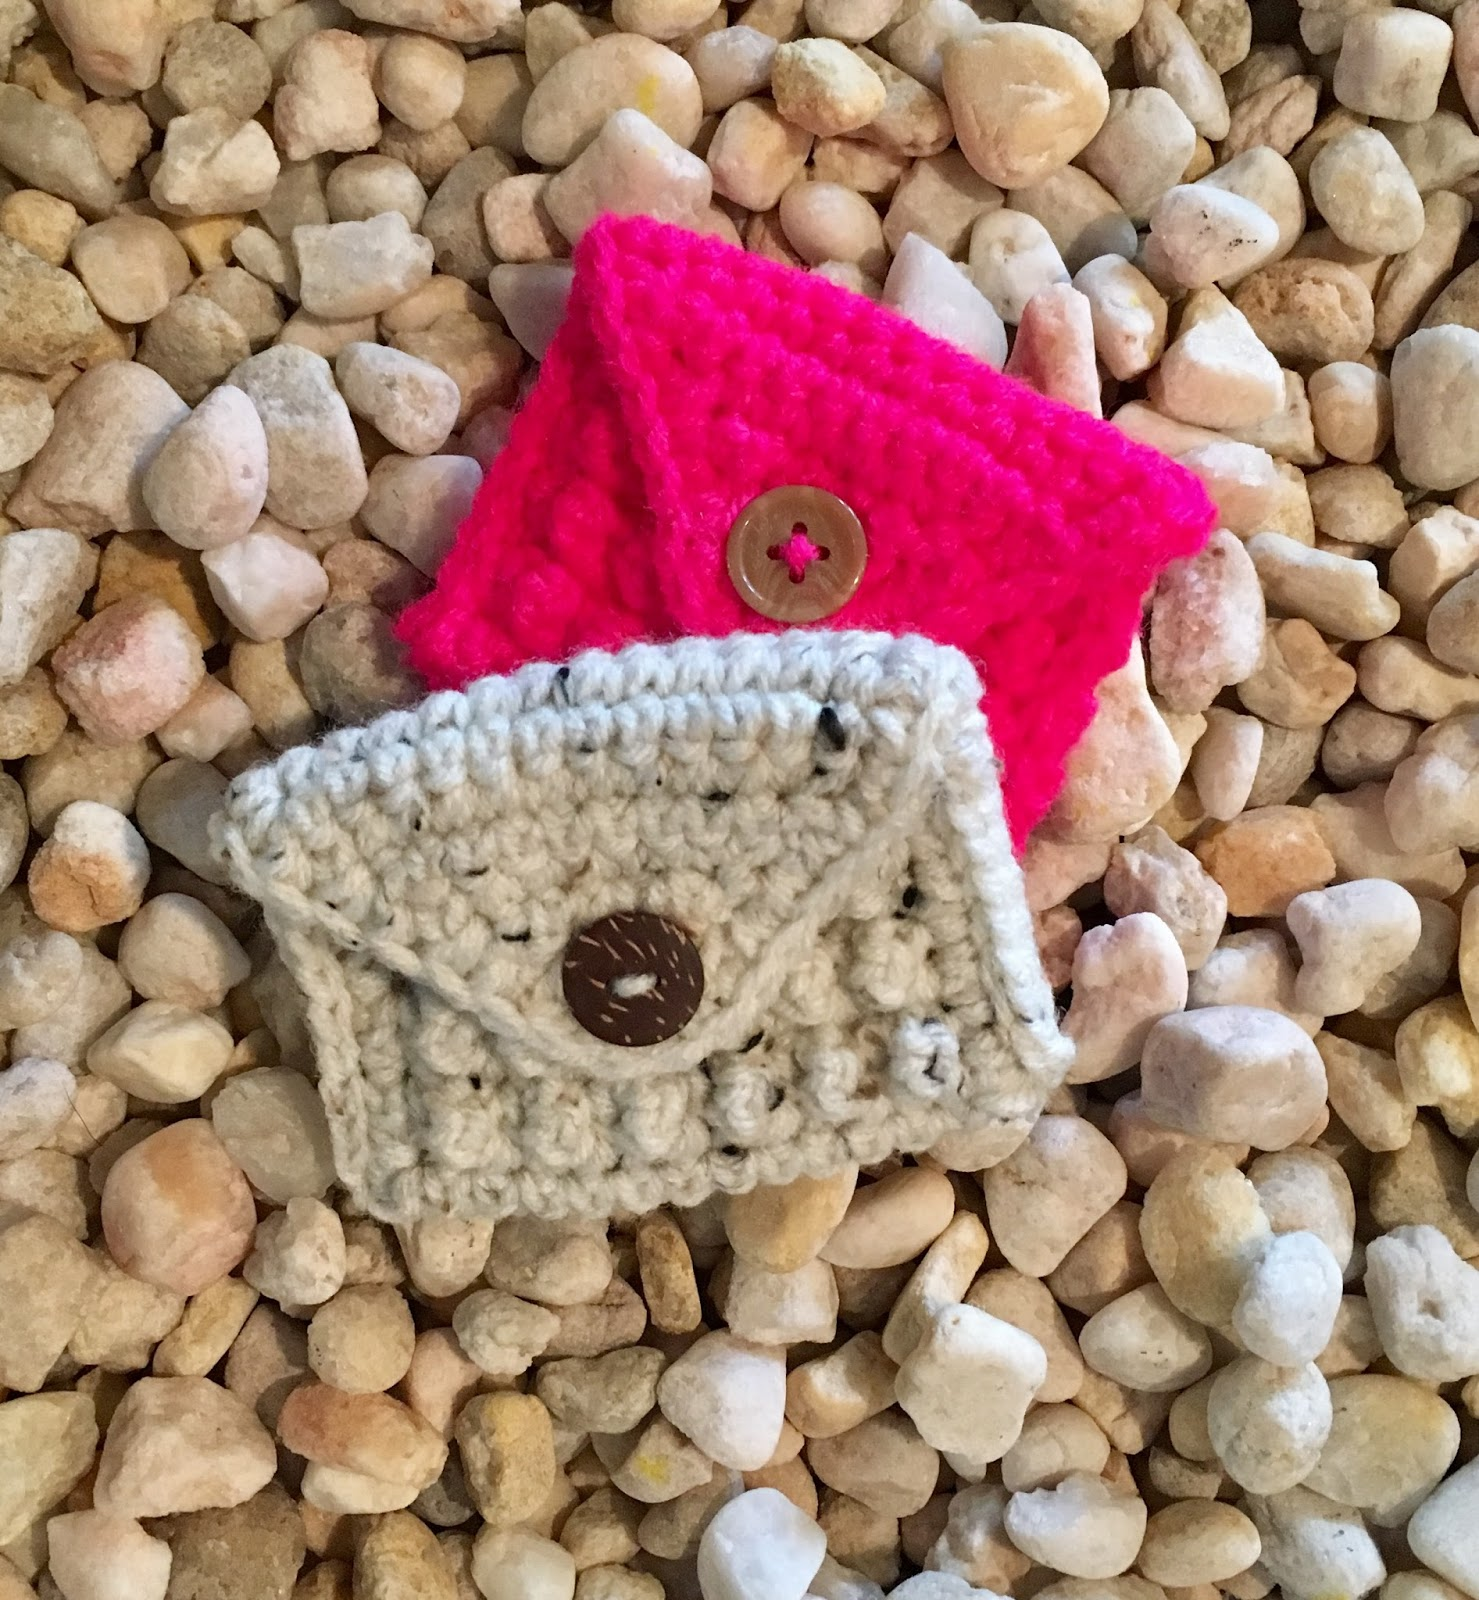 Lovely Coin Purse For Starters, And As A Bonus, I've Just Decided To  Make A Matching Checkbook Cover! We're Going To Make Some Fun Easter Bunny  Ears,